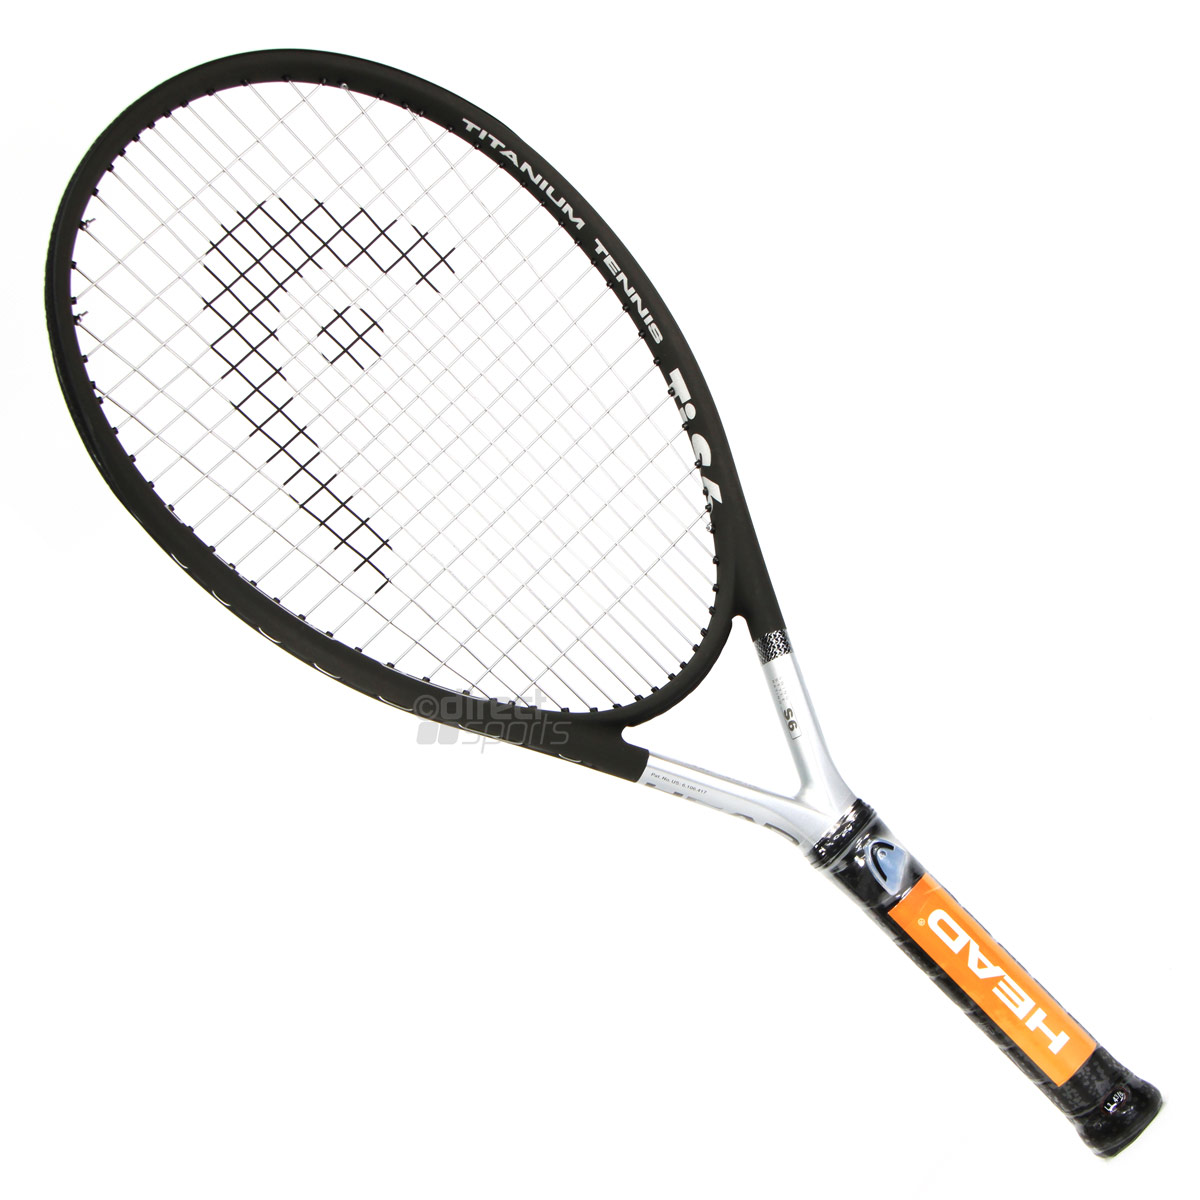 a comparison of the titanium chang and the original chang racquet in tennis Disc sanders for sale prince longbody precision 730 tennis racquet $4499 prince michael chang titanium longbody os 107 4 58 tennis racquet racket.